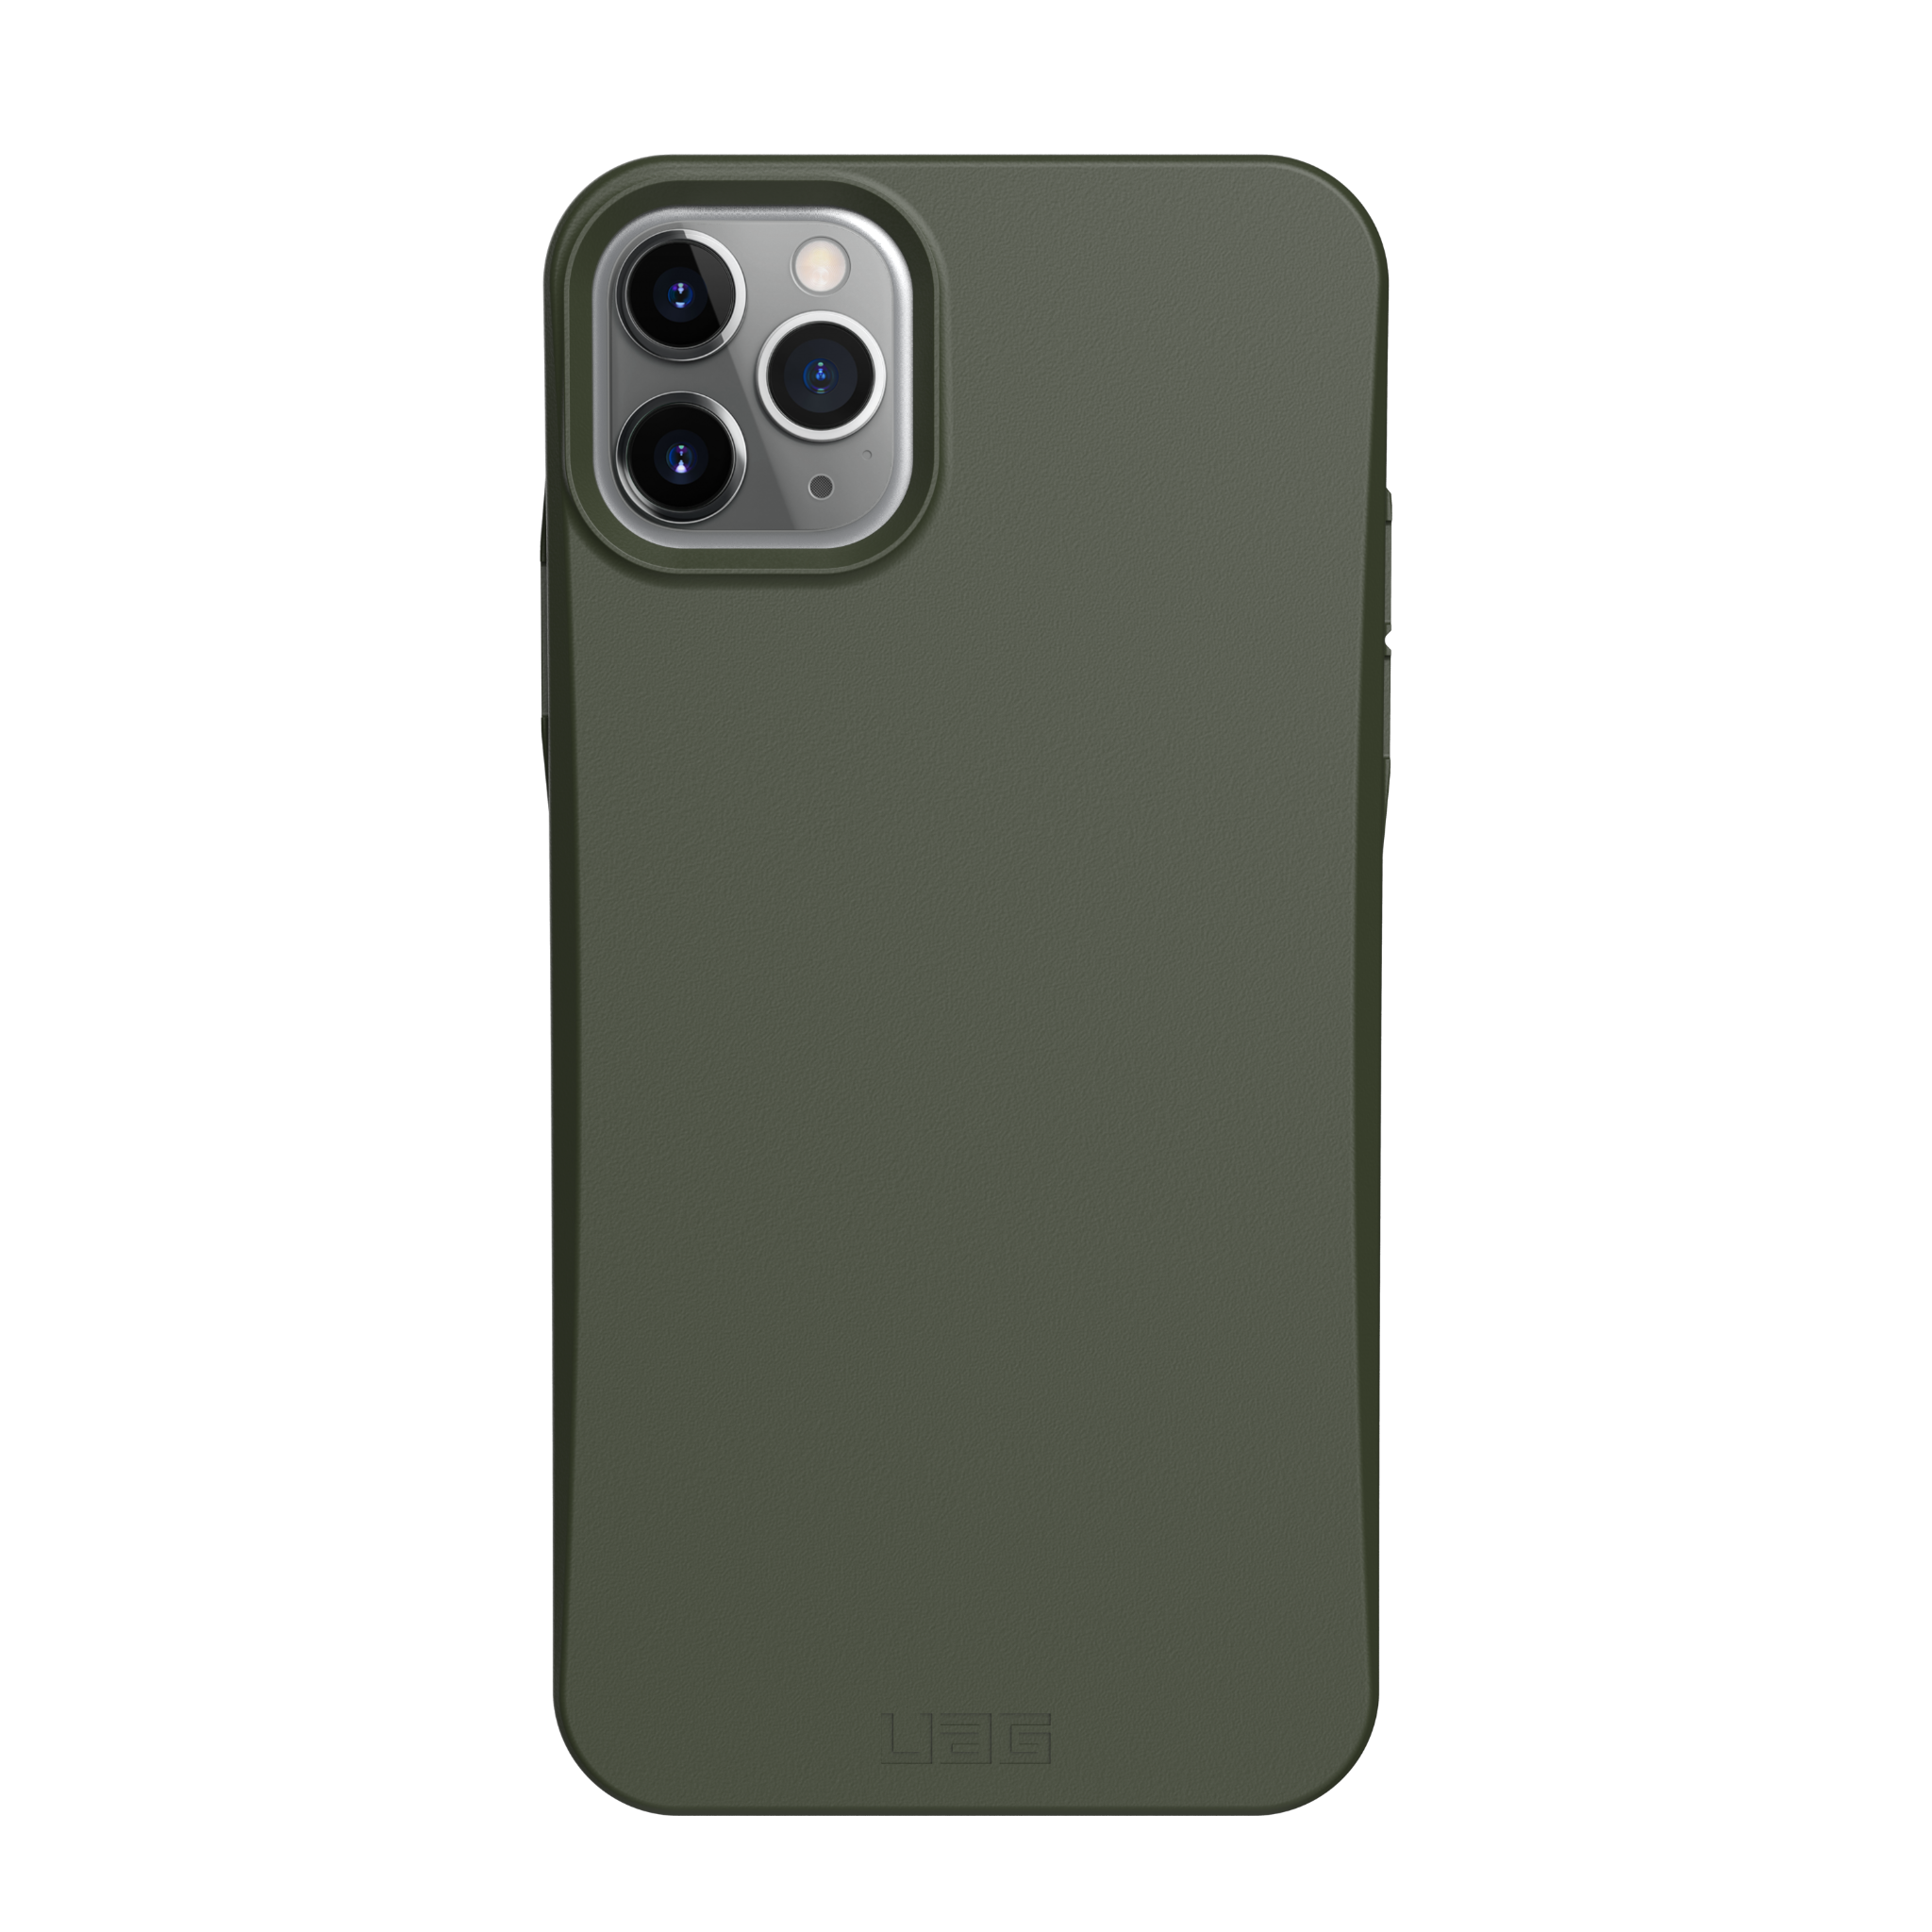 Ốp lưng Outback Biodegradable cho iPhone 11 Pro Max [6.5-inch]